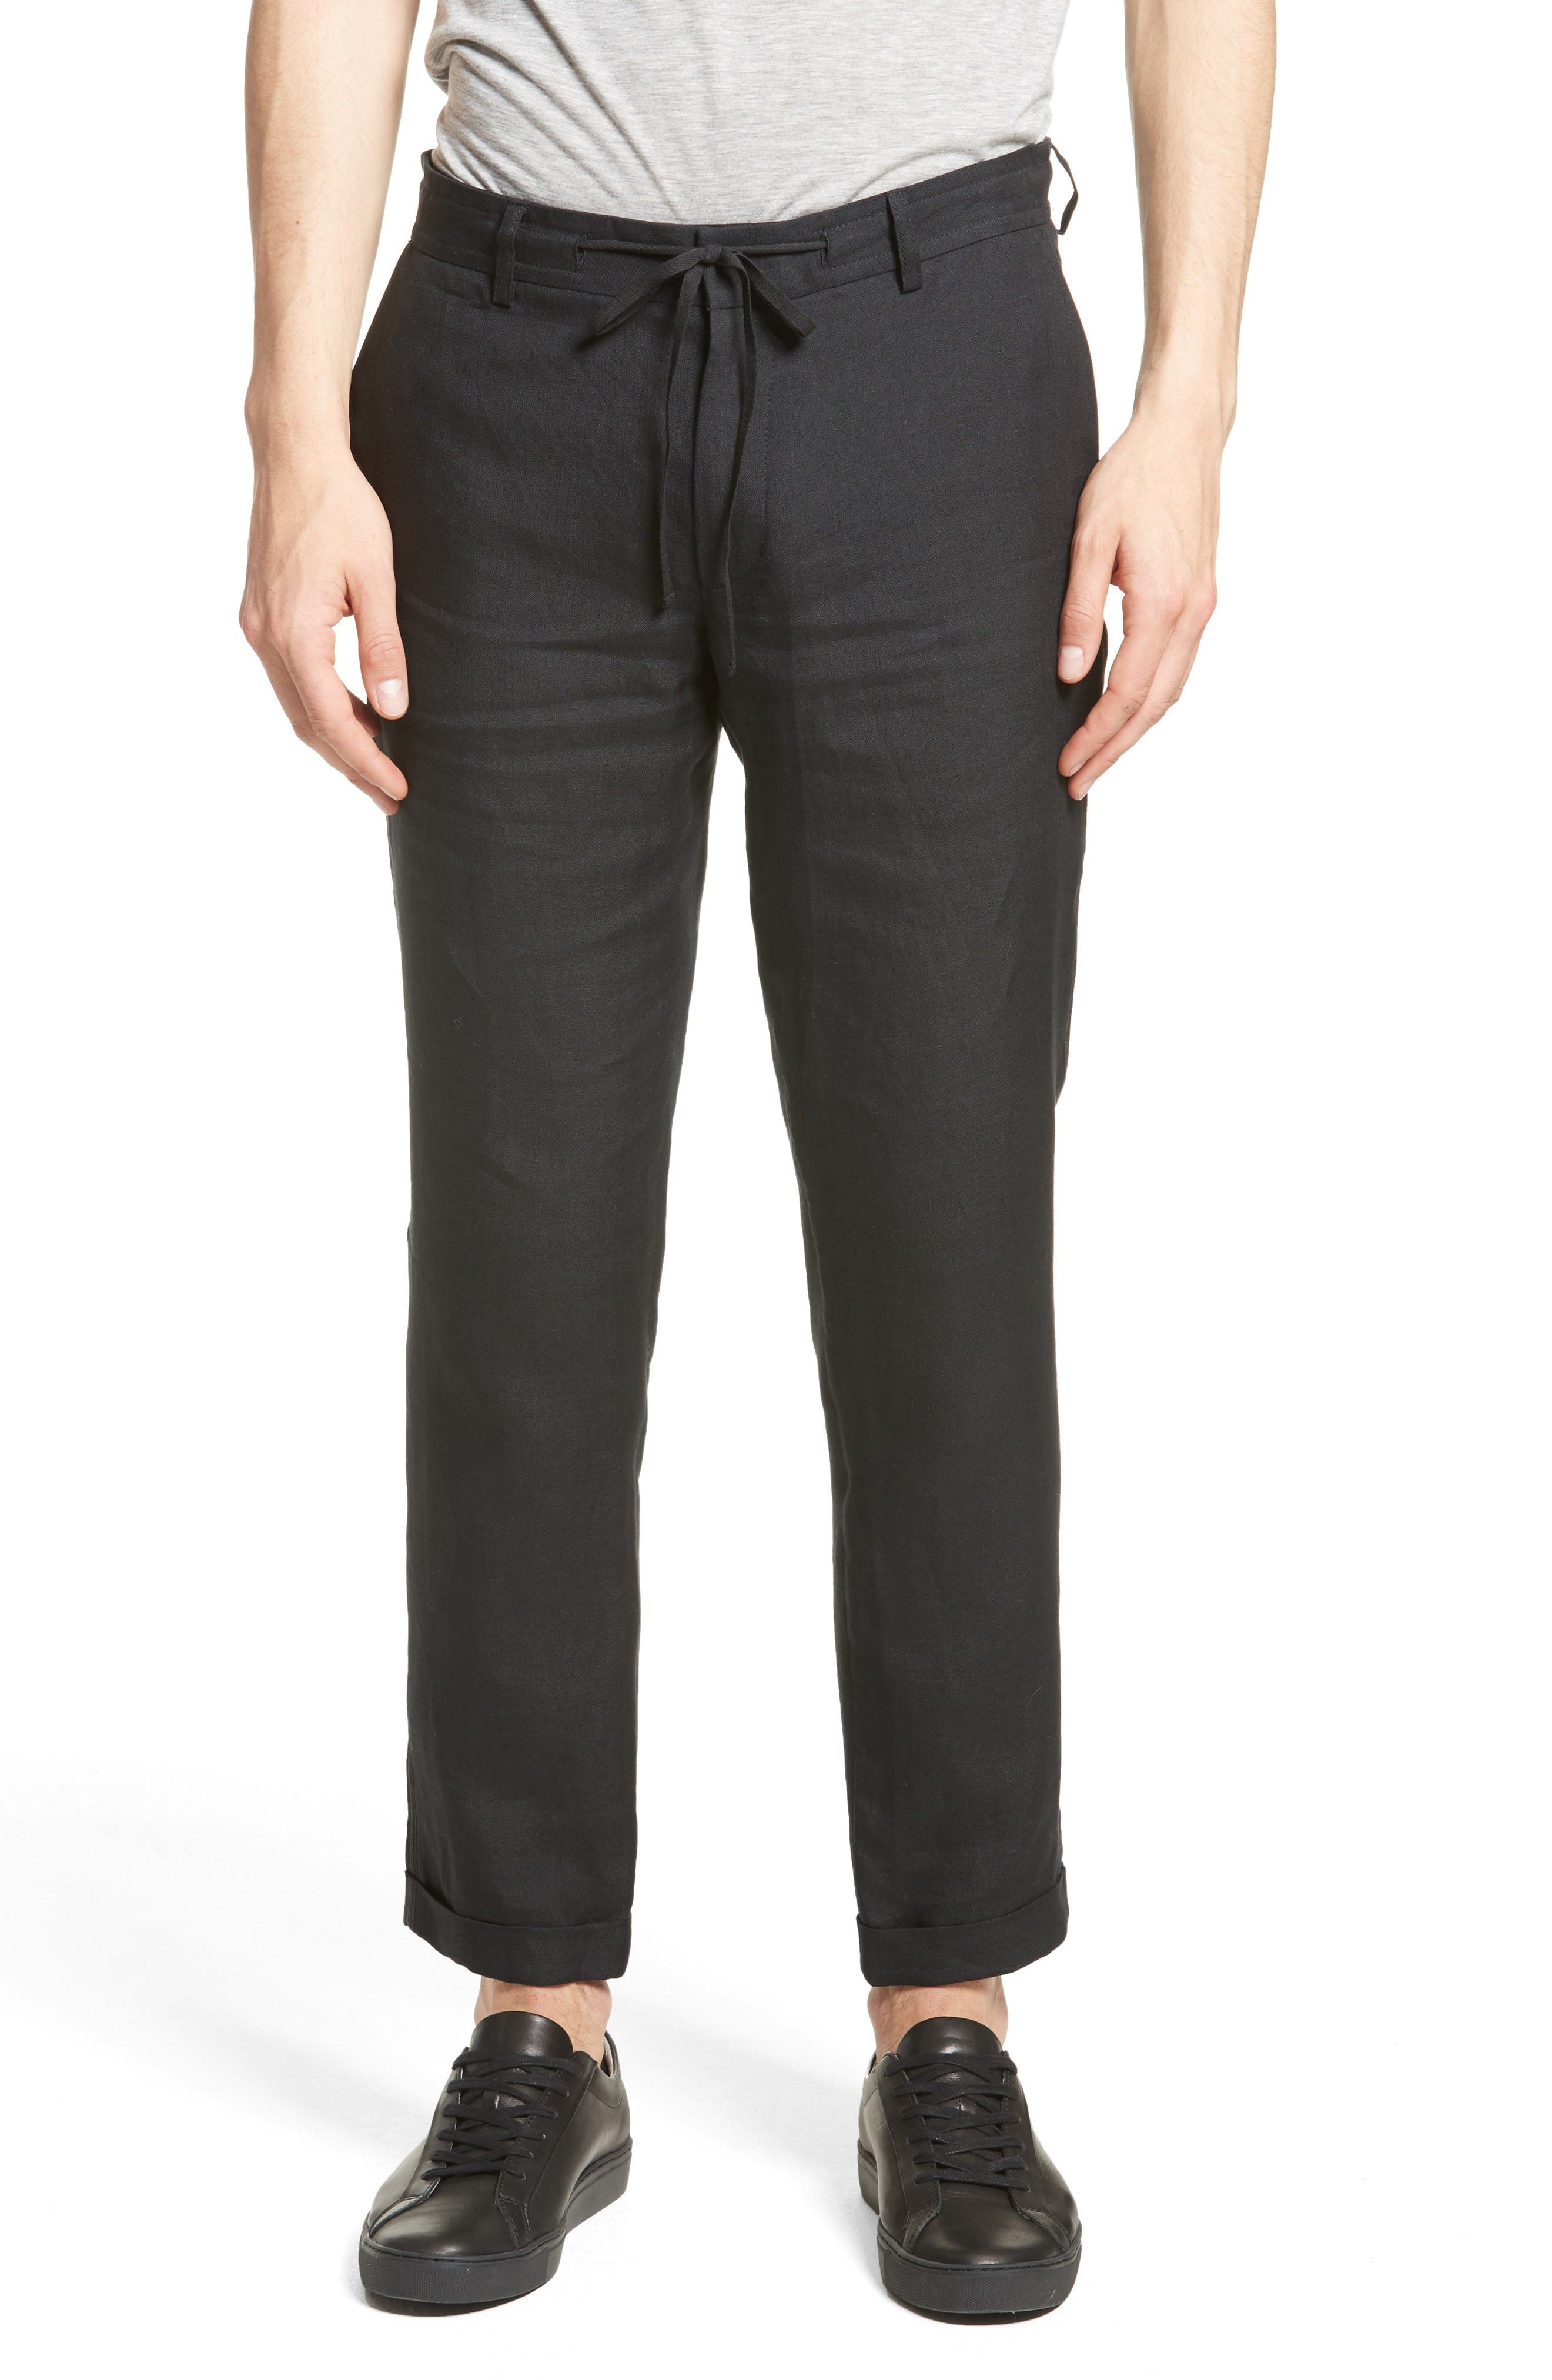 The Kooples Relaxed Fit Linen Pants